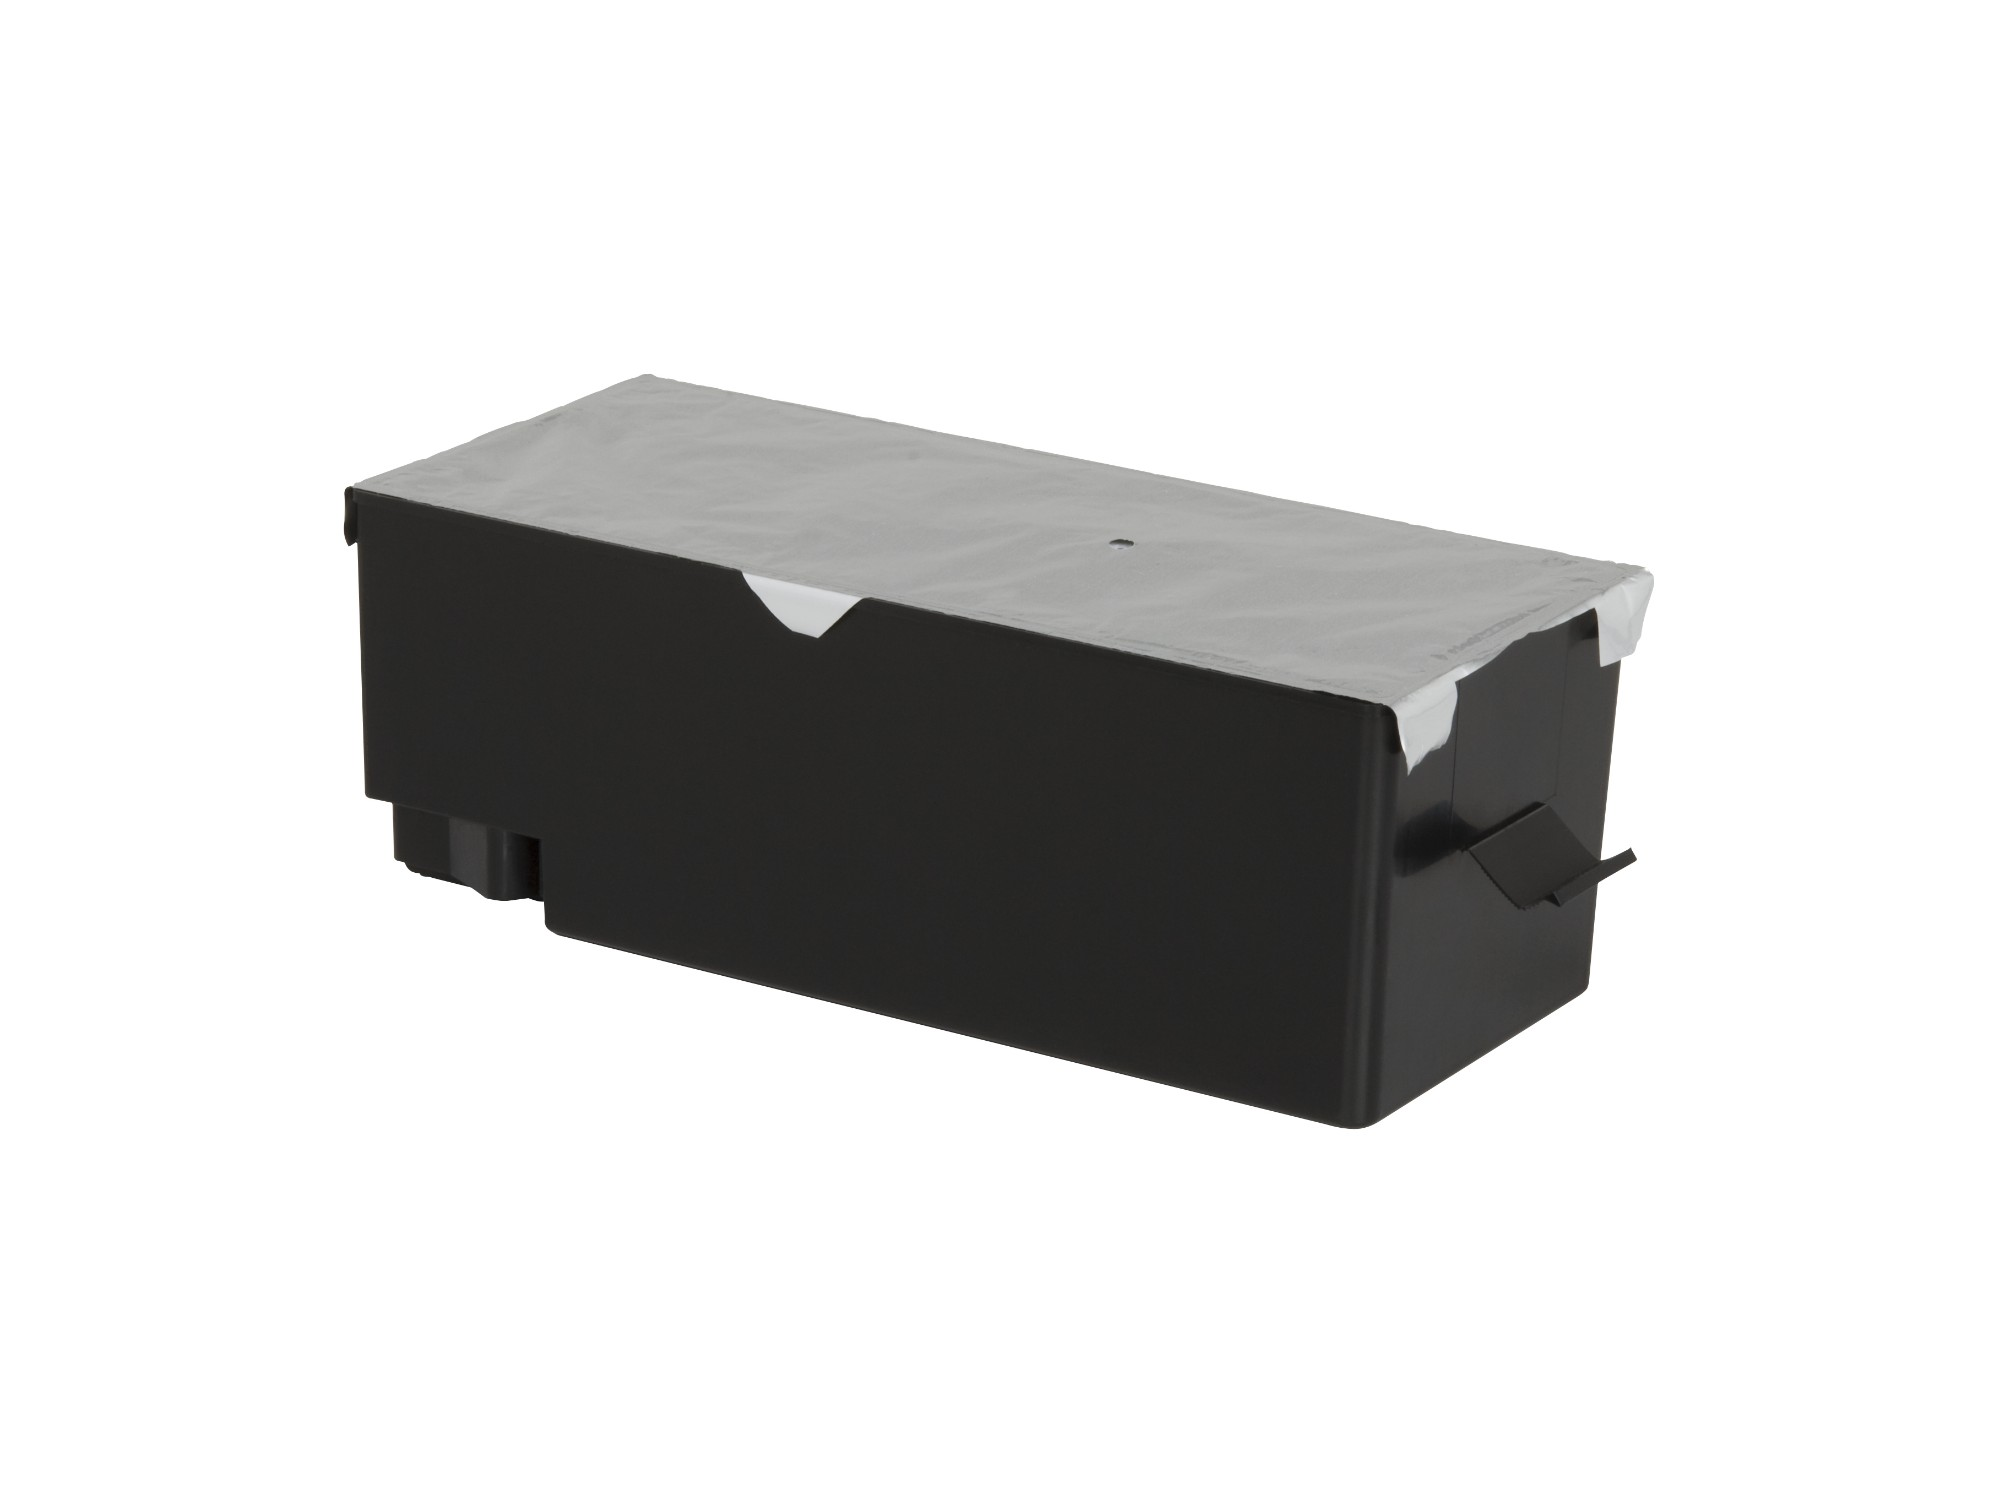 Epson SJMB7500: Maintenance Box for ColorWorks C7500, C7500G